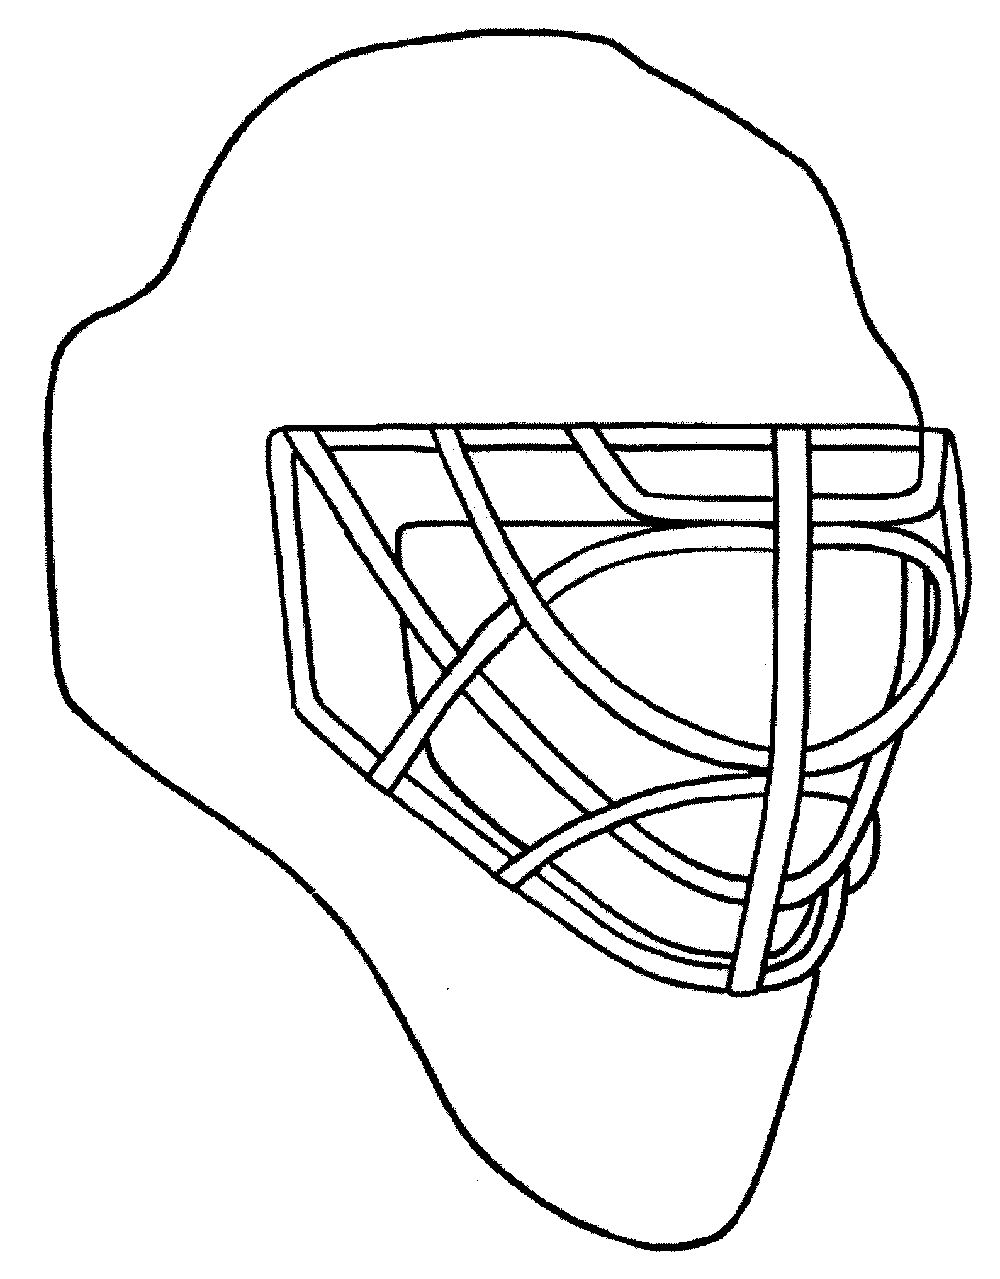 1000x1279 In Nhl Coloring Pages Coloring Pages For Children Nhl Coloring